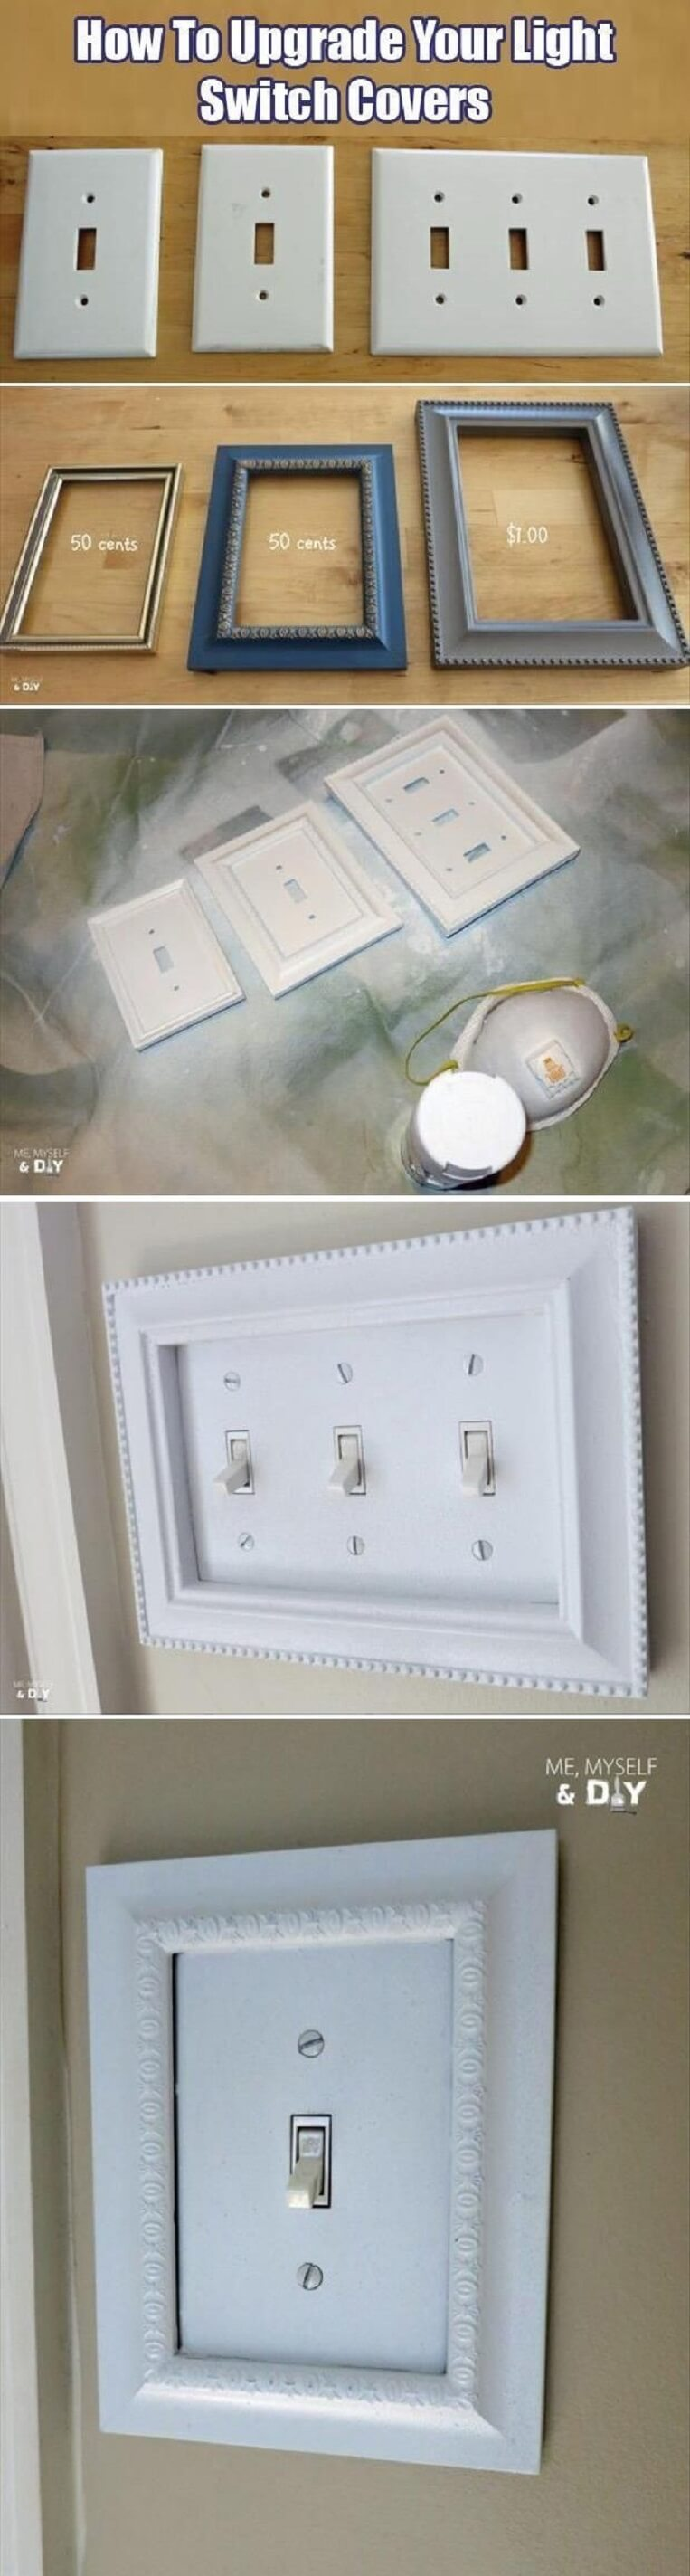 Frame Your Light Switches in Style